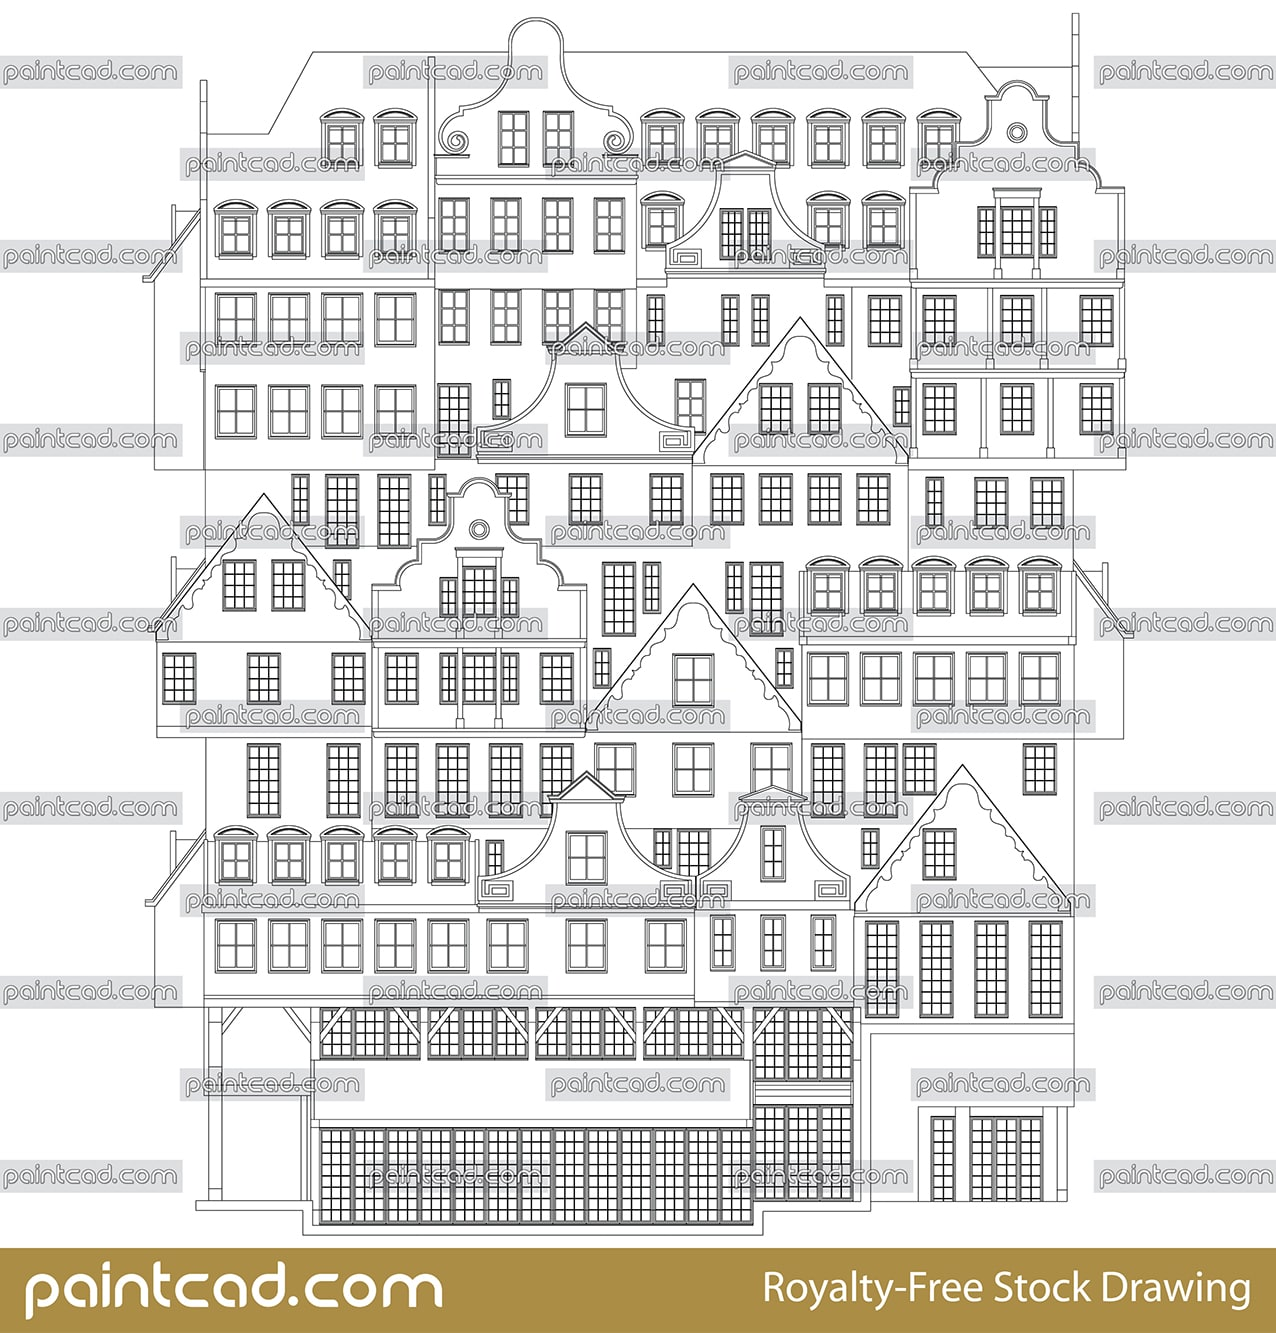 Drawing with a facade of Inntel hotels in Zaandam,  Amsterdam - vector illustration